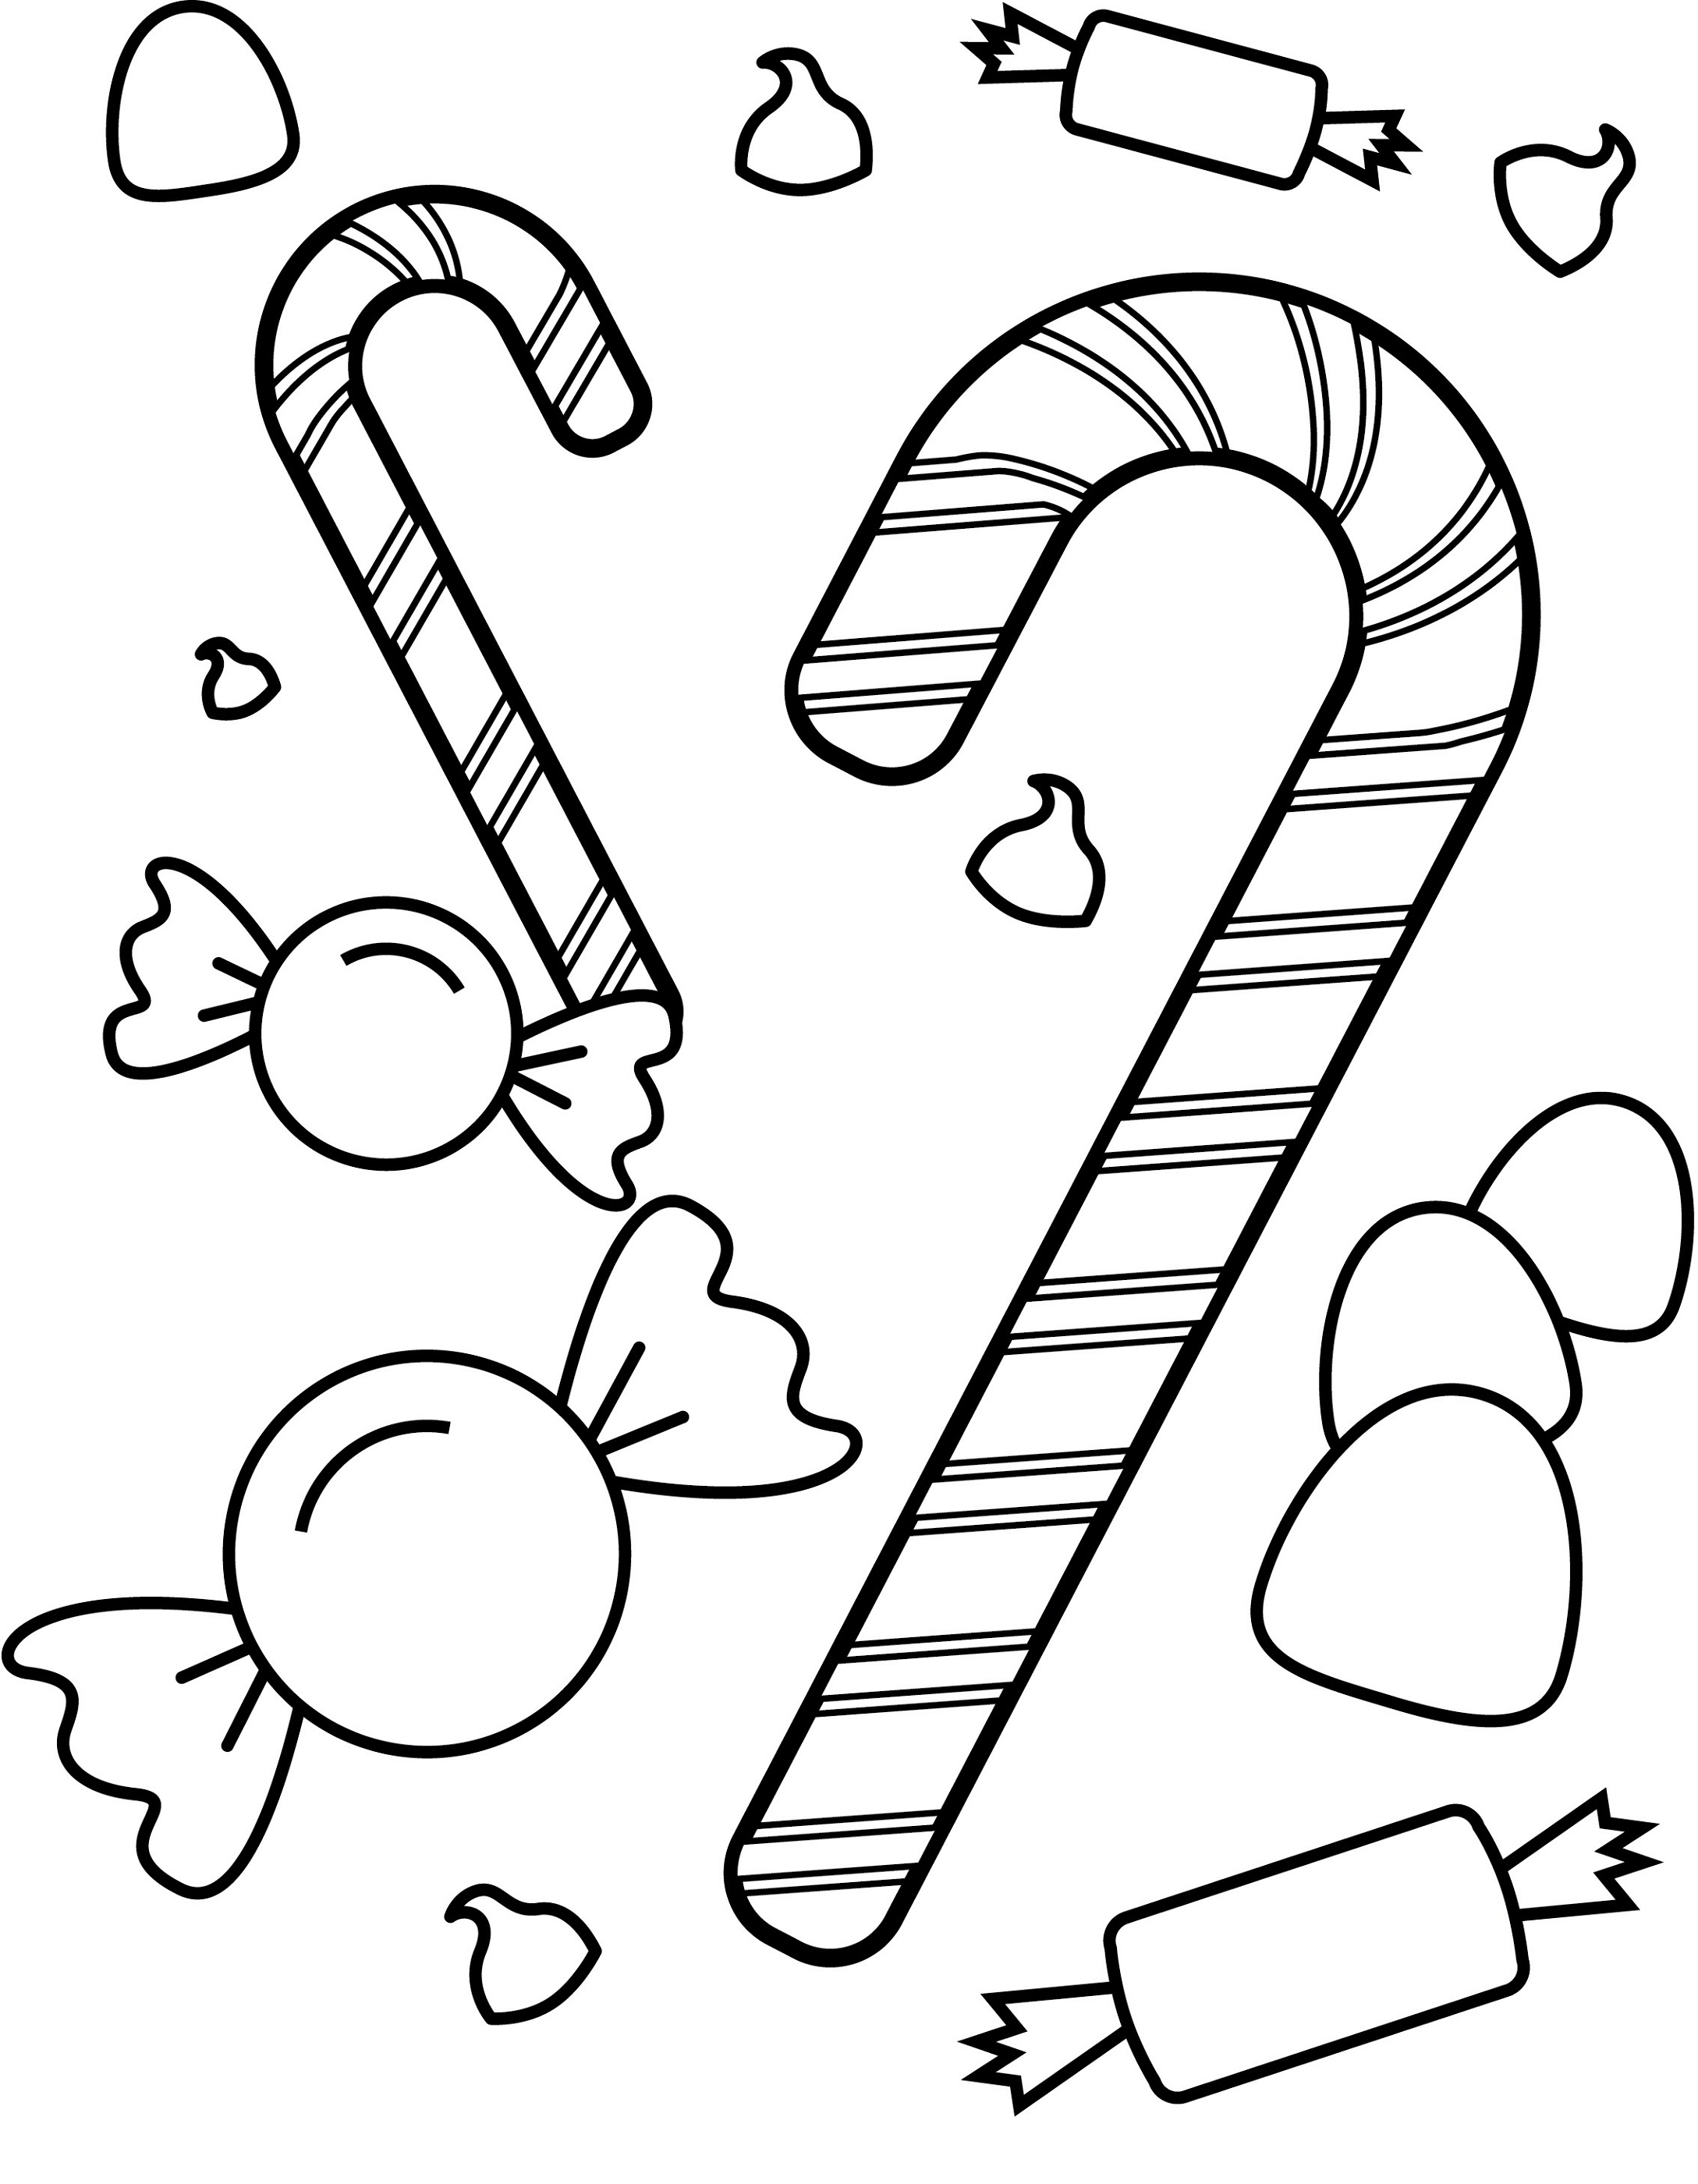 candyland coloring sheets candyland drawing at getdrawings free download candyland coloring sheets